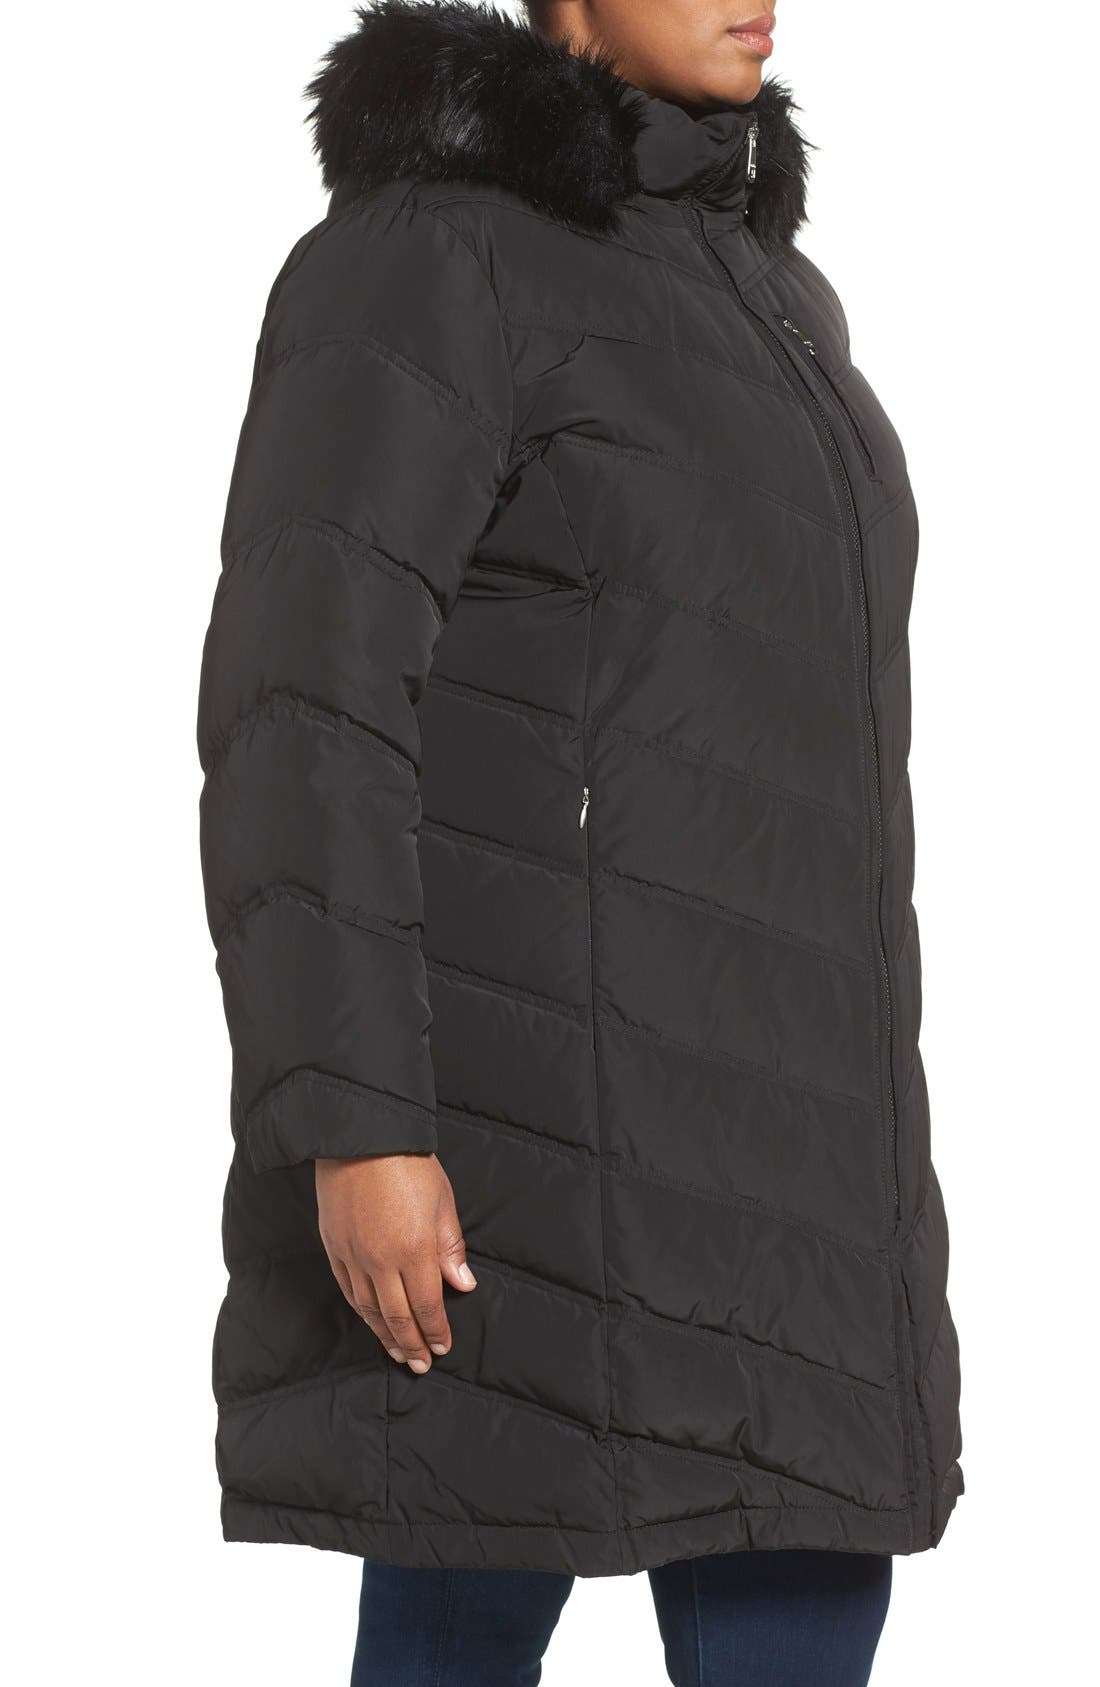 CALVIN KLEIN,                             Water Resistant Puffer Coat with Faux Fur Trim,                             Alternate thumbnail 5, color,                             001